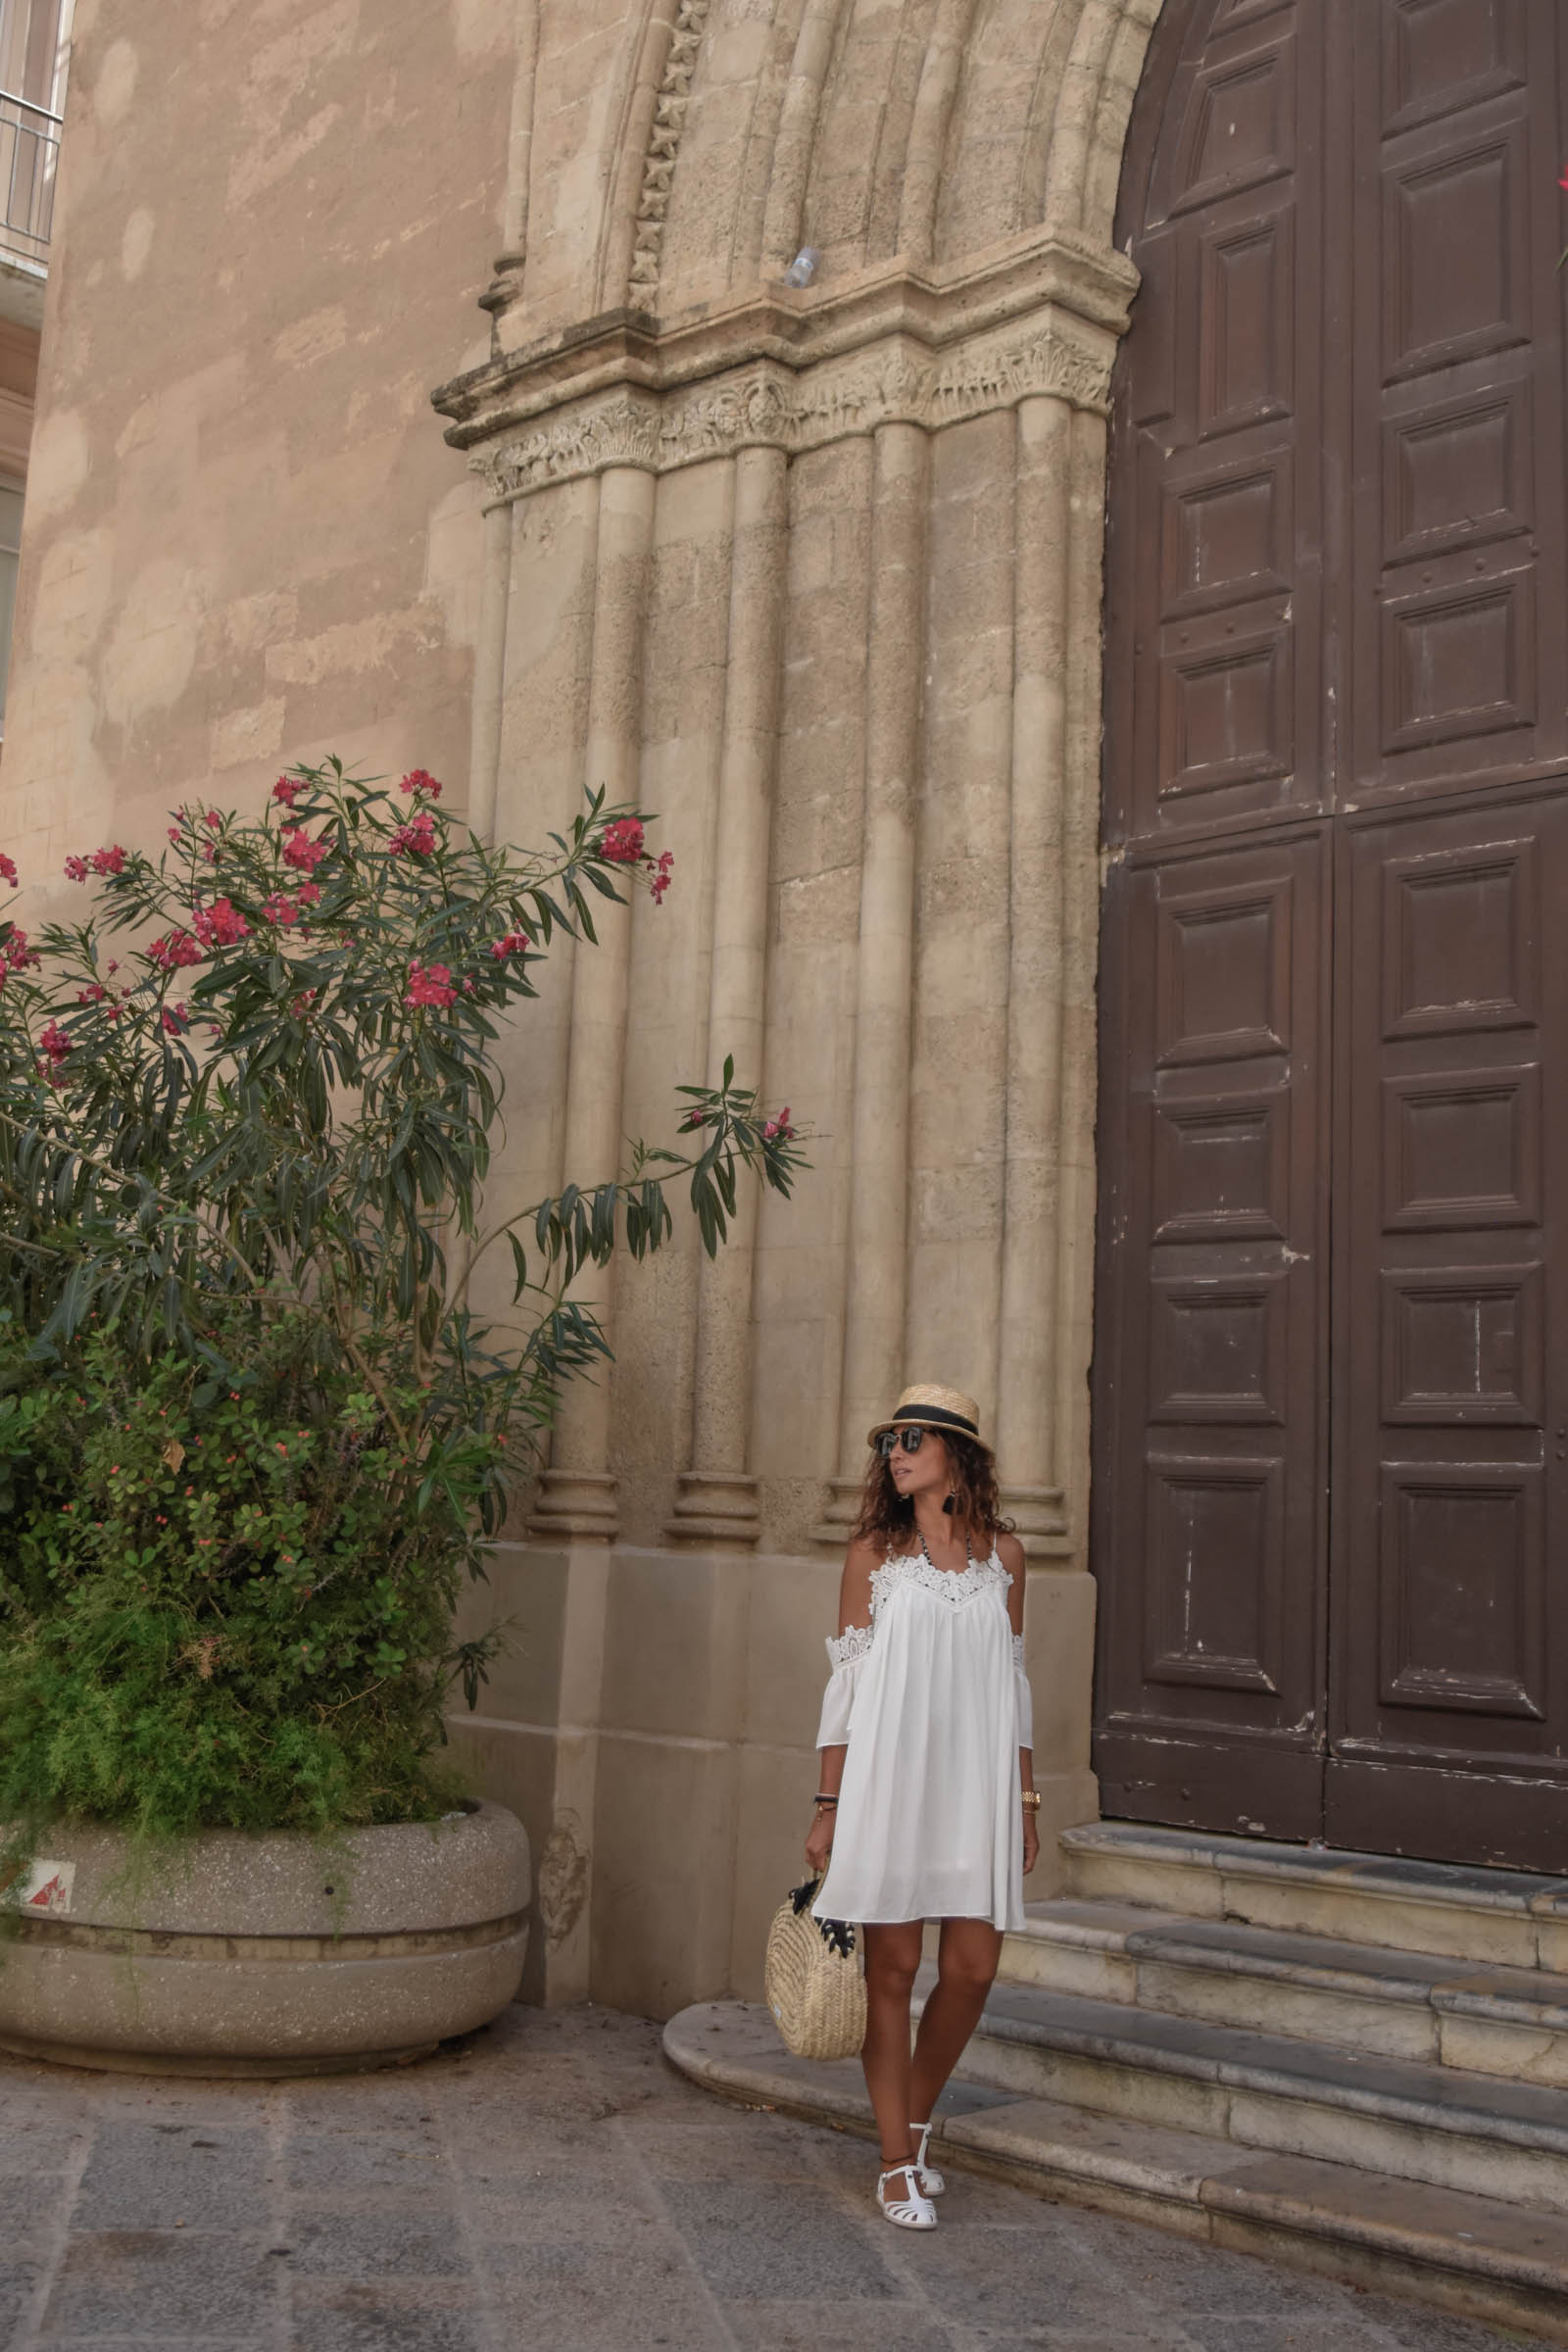 el-blog-de-silvia-rodriguez-lifestyle-travel-blogger-verano-vacaciones-en-trapani-sicilia-sicily-holidays-white-summer-dress